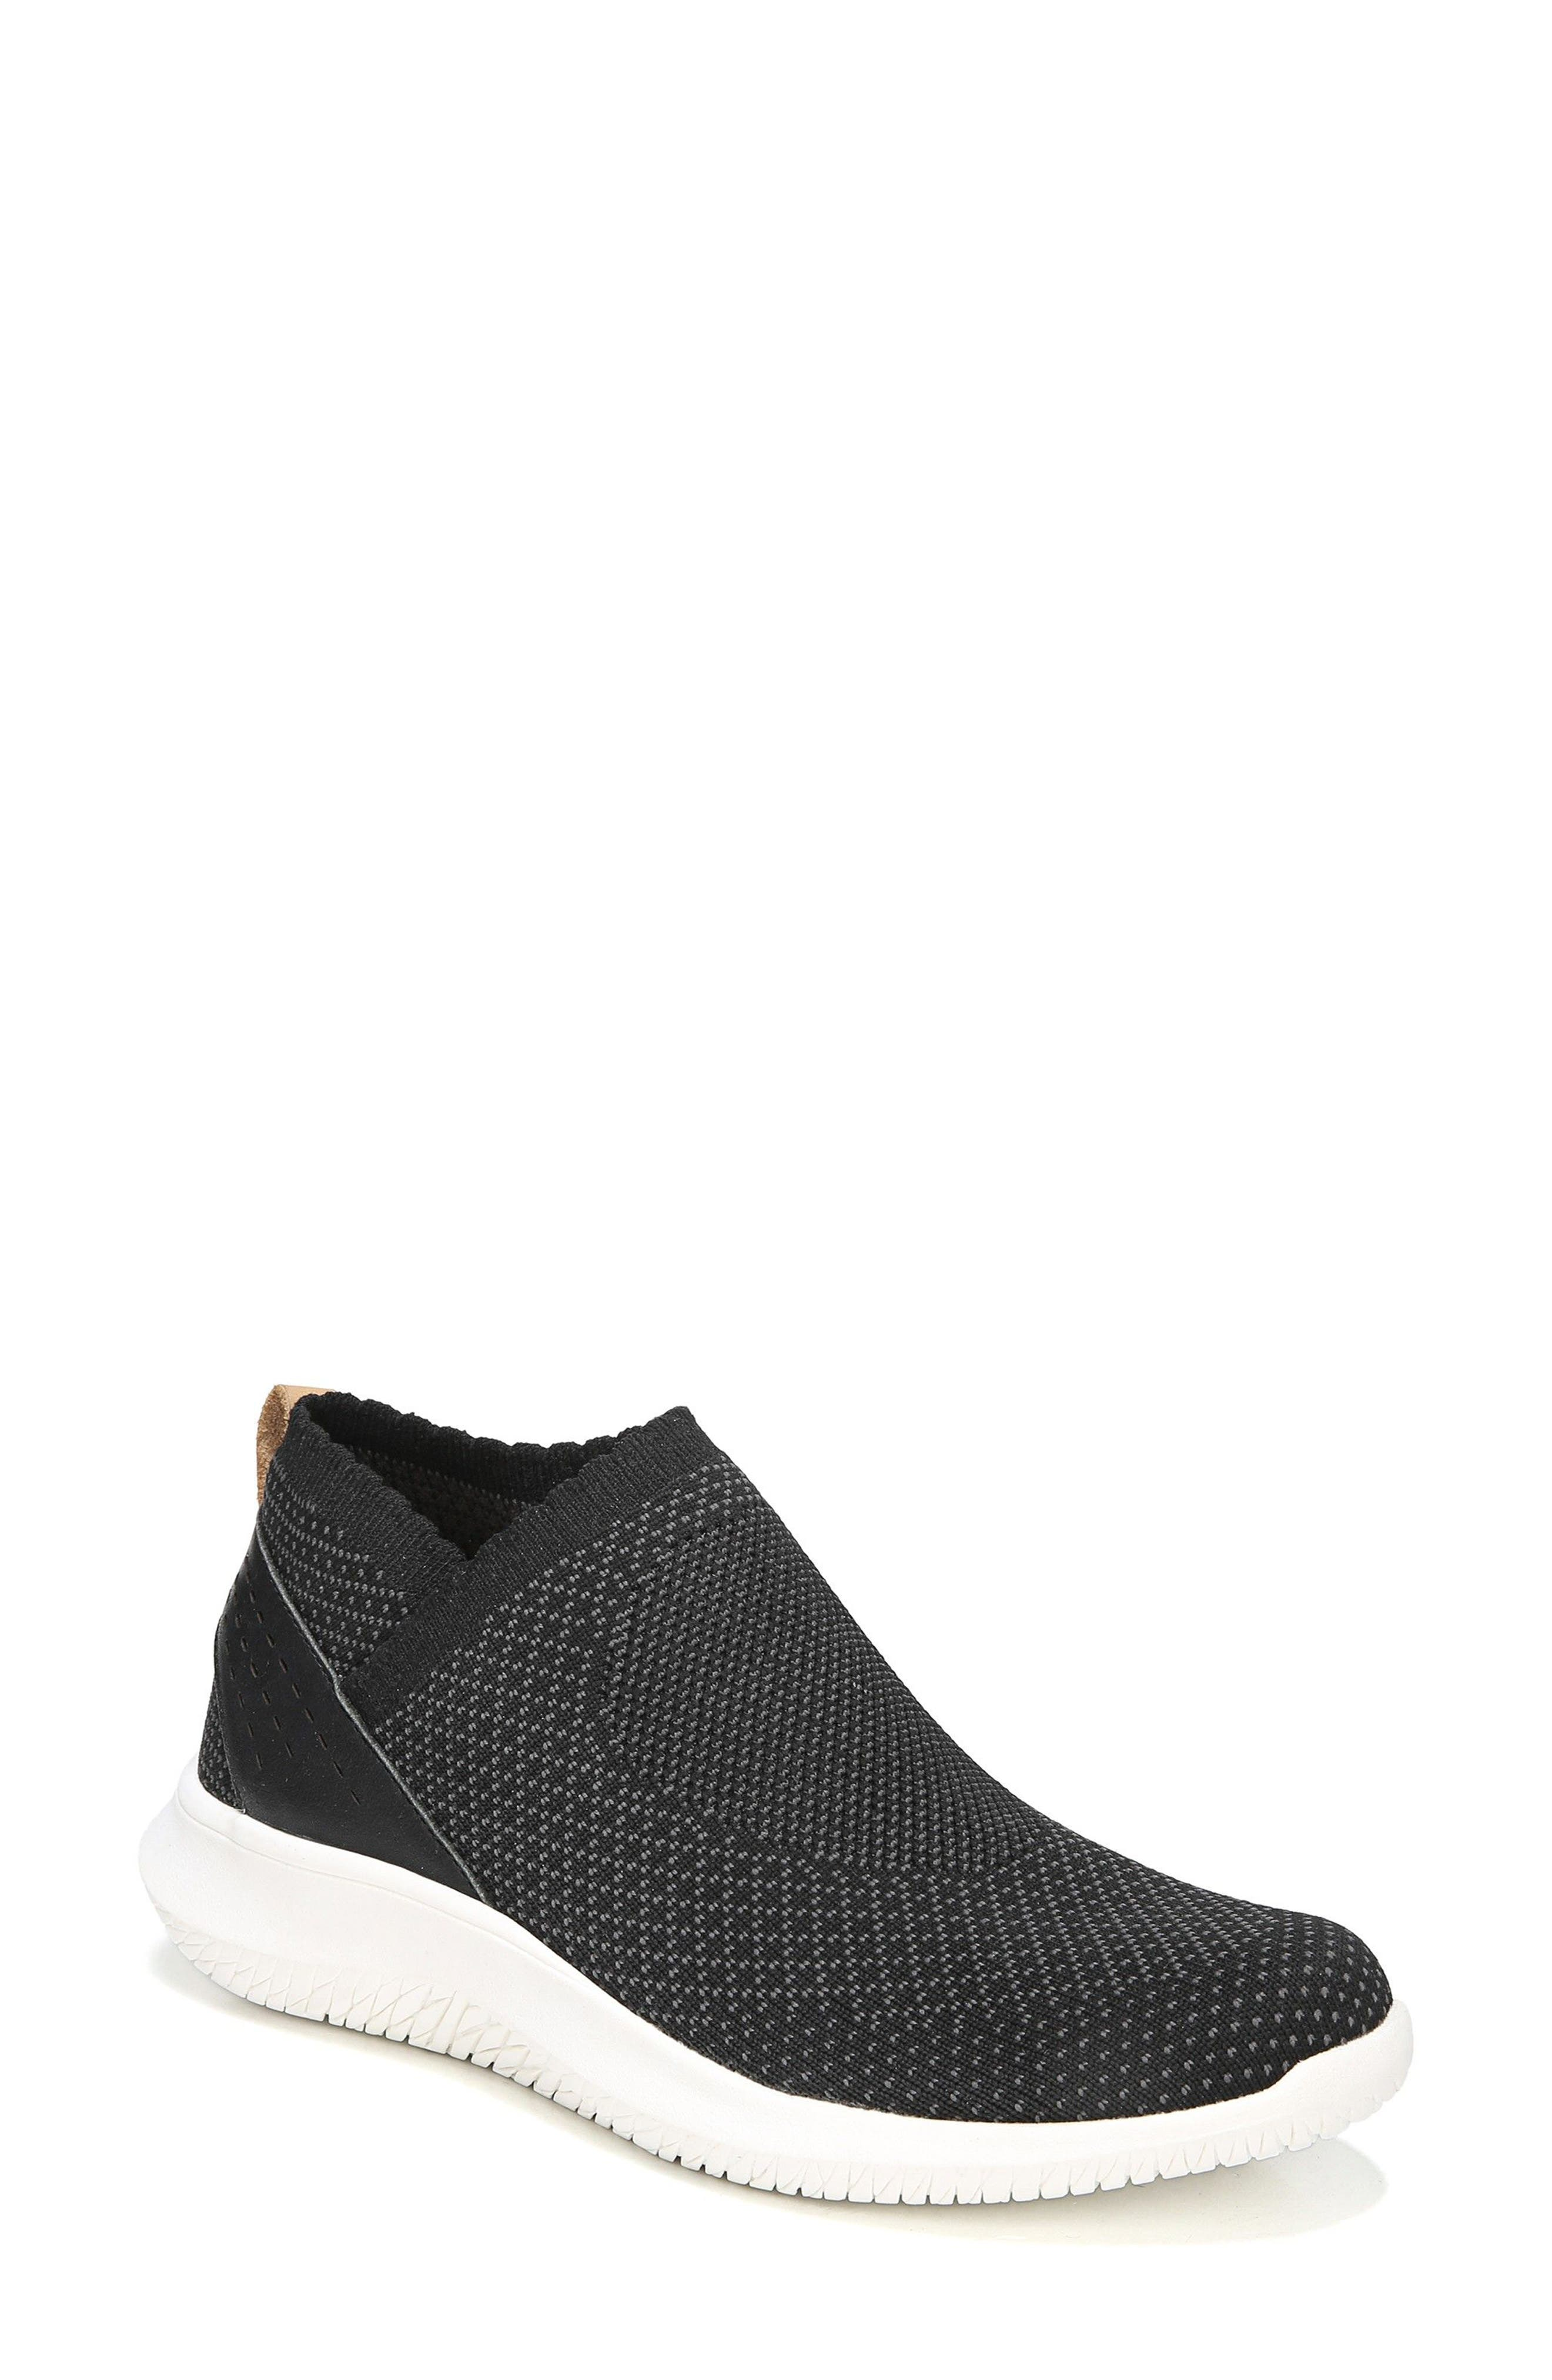 Dr. Scholl's Fierce Knit Slip-On Sneaker (Women)